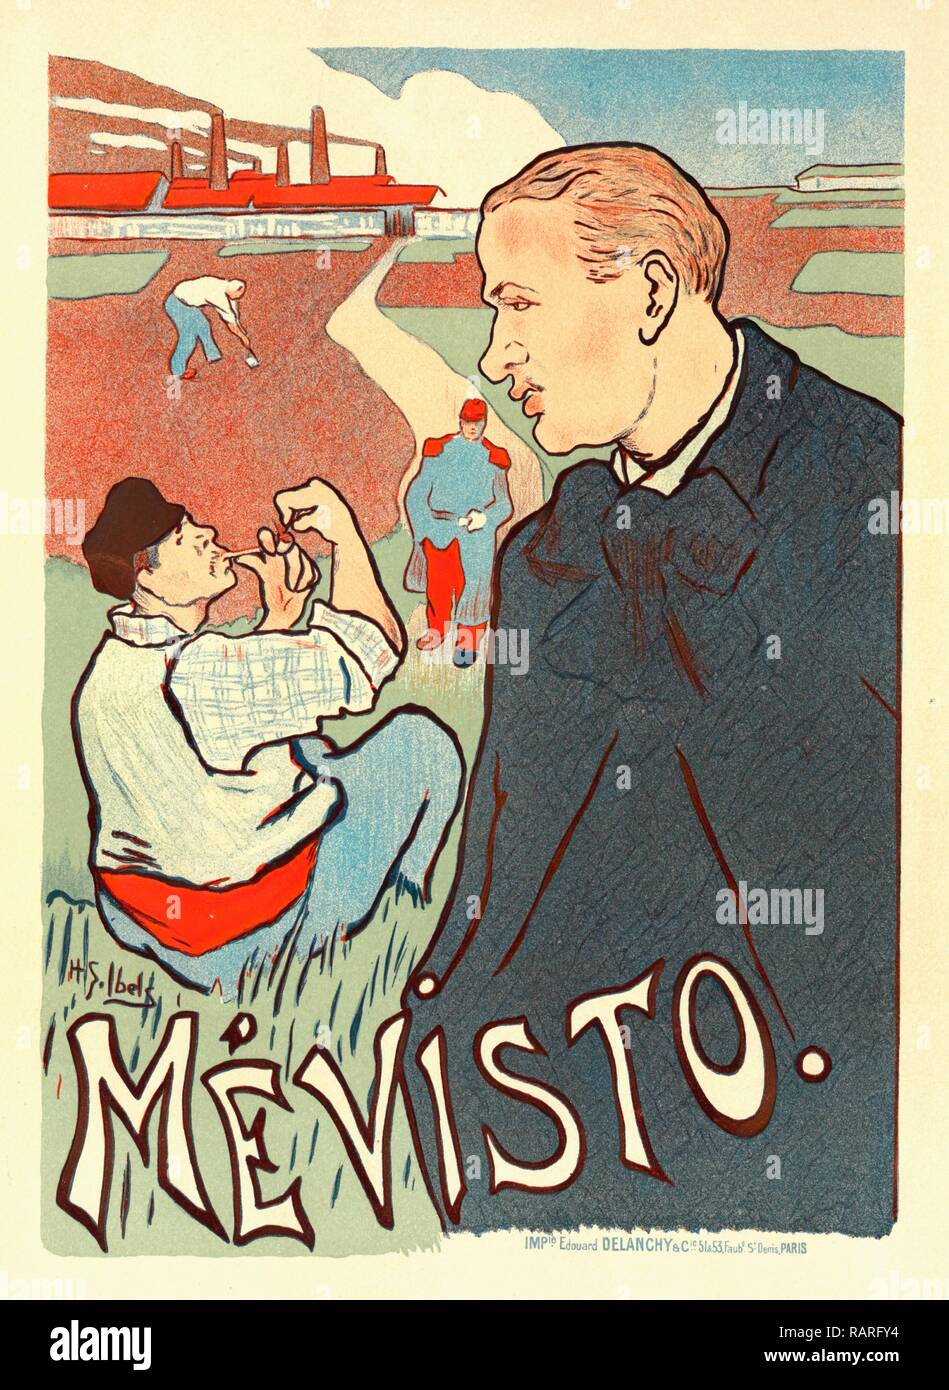 Poster for Mévisto. Ibels, Henry Gabriel (1867-1936), French illustrator, printmaker, painter and author.He studied reimagined - Stock Image